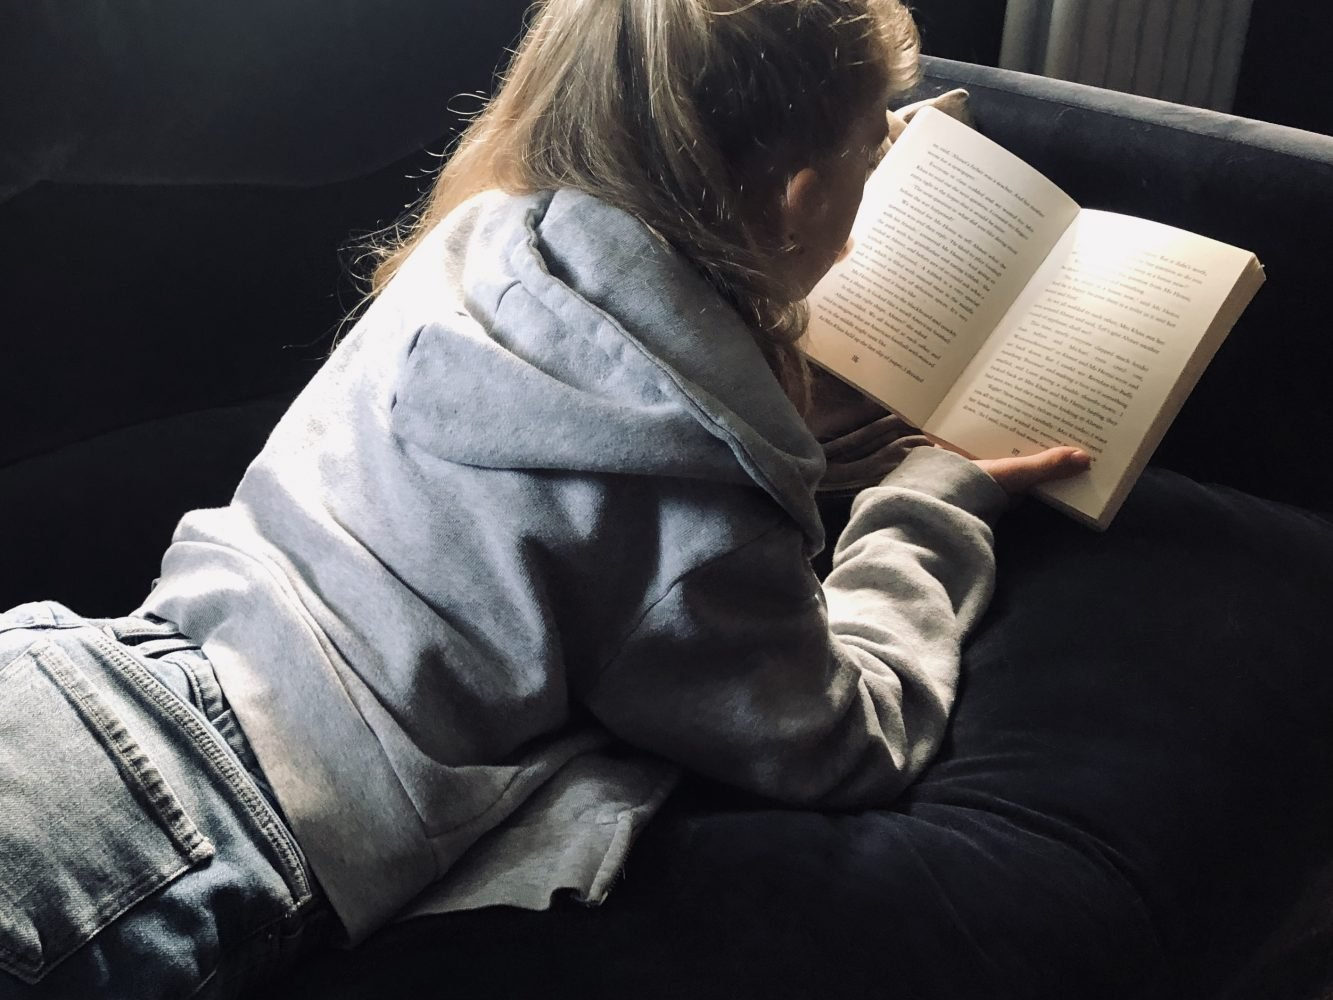 The wonderful distraction of books: Reading to support children